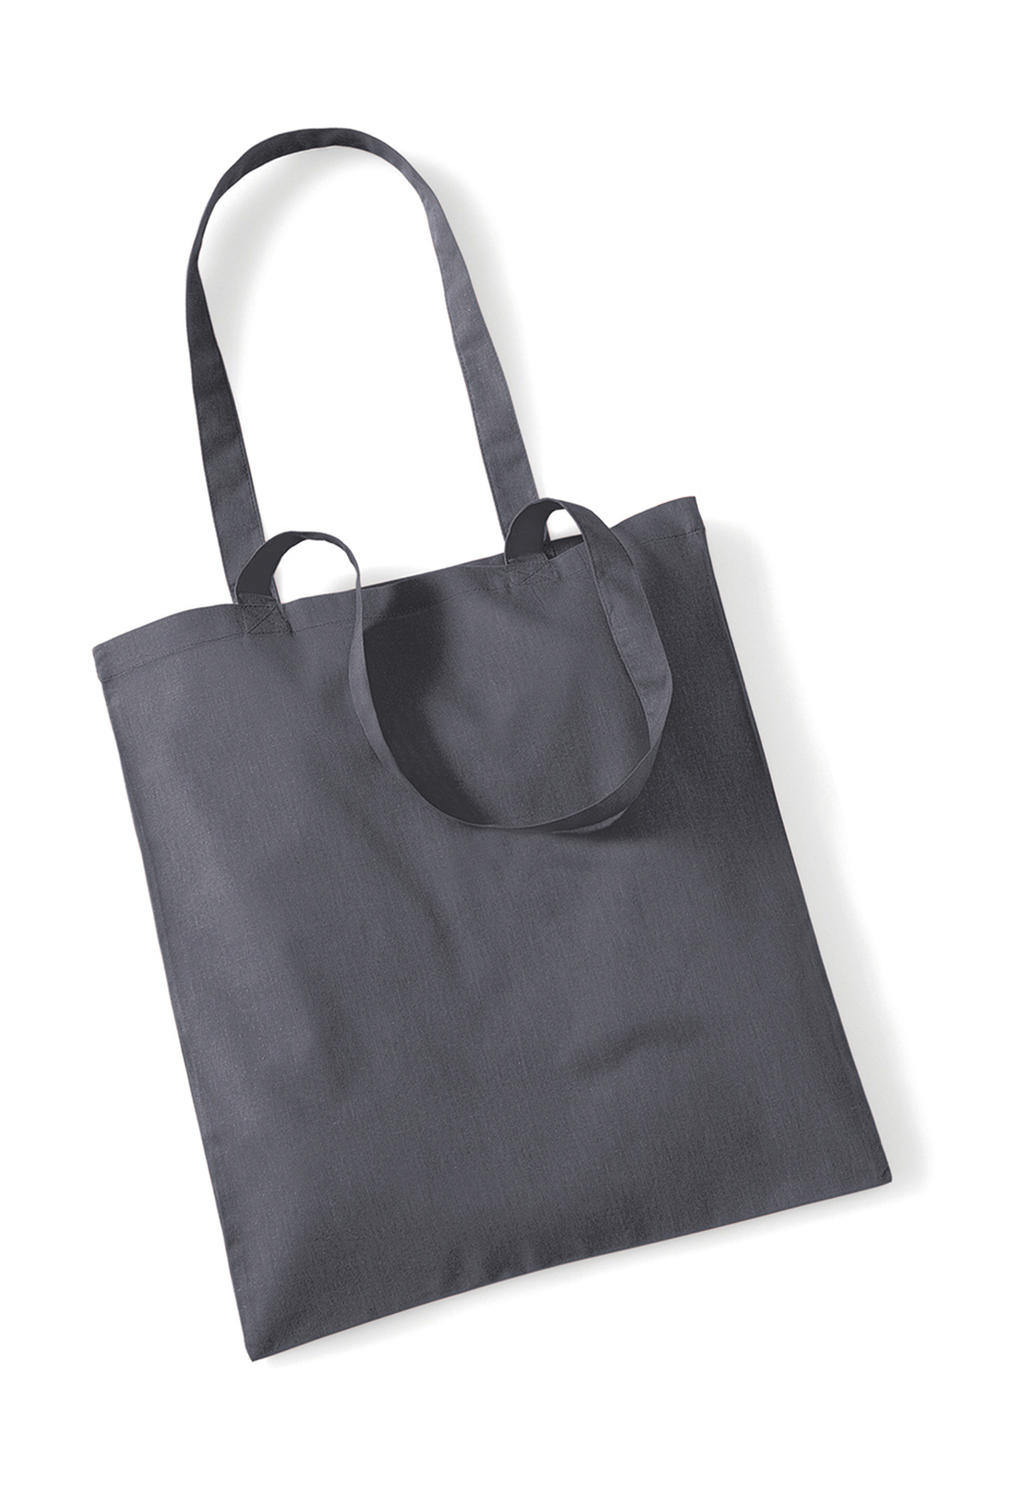 Westford Mill Bag for Life - Long Handles